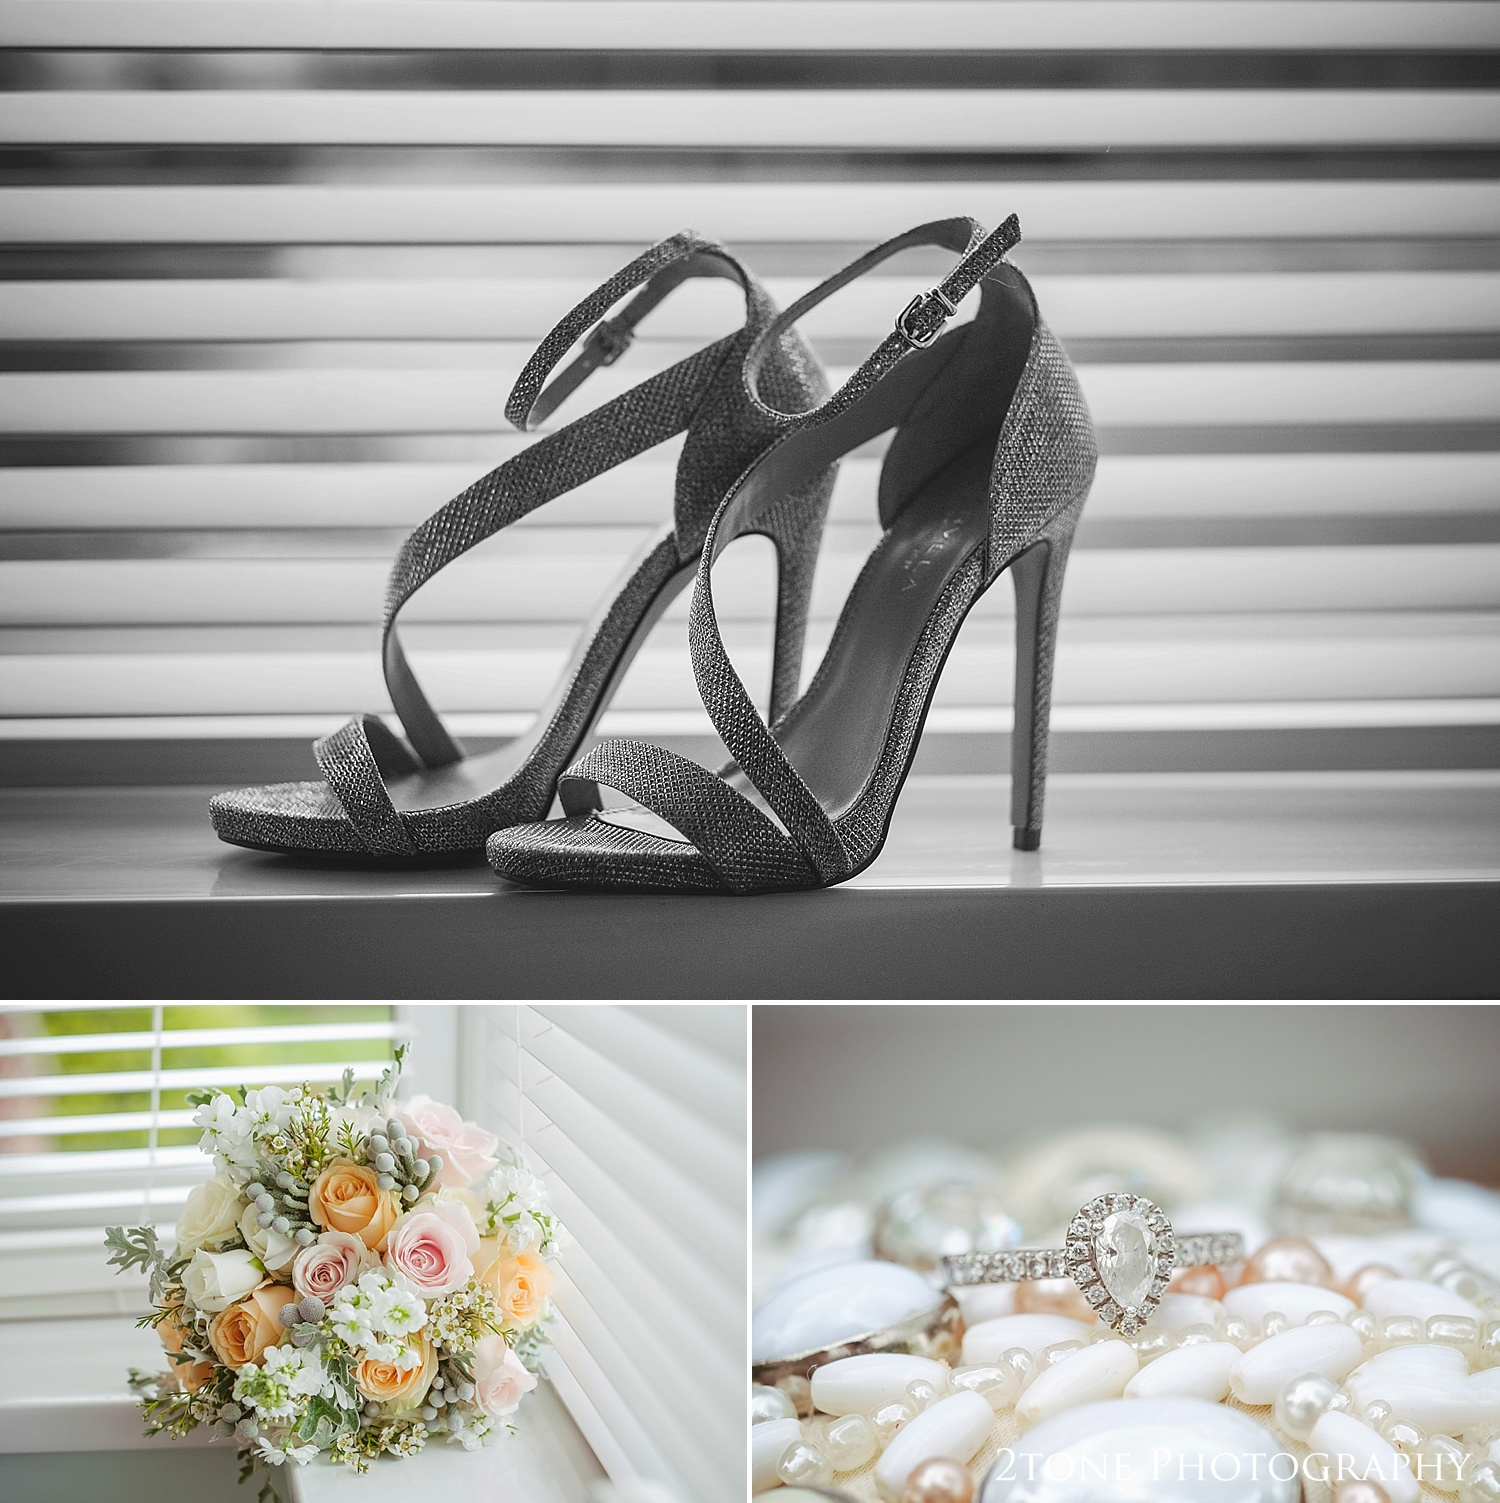 Wedding shoes by wedding photography team 2tonephotography www.2tonephotography.co.uk